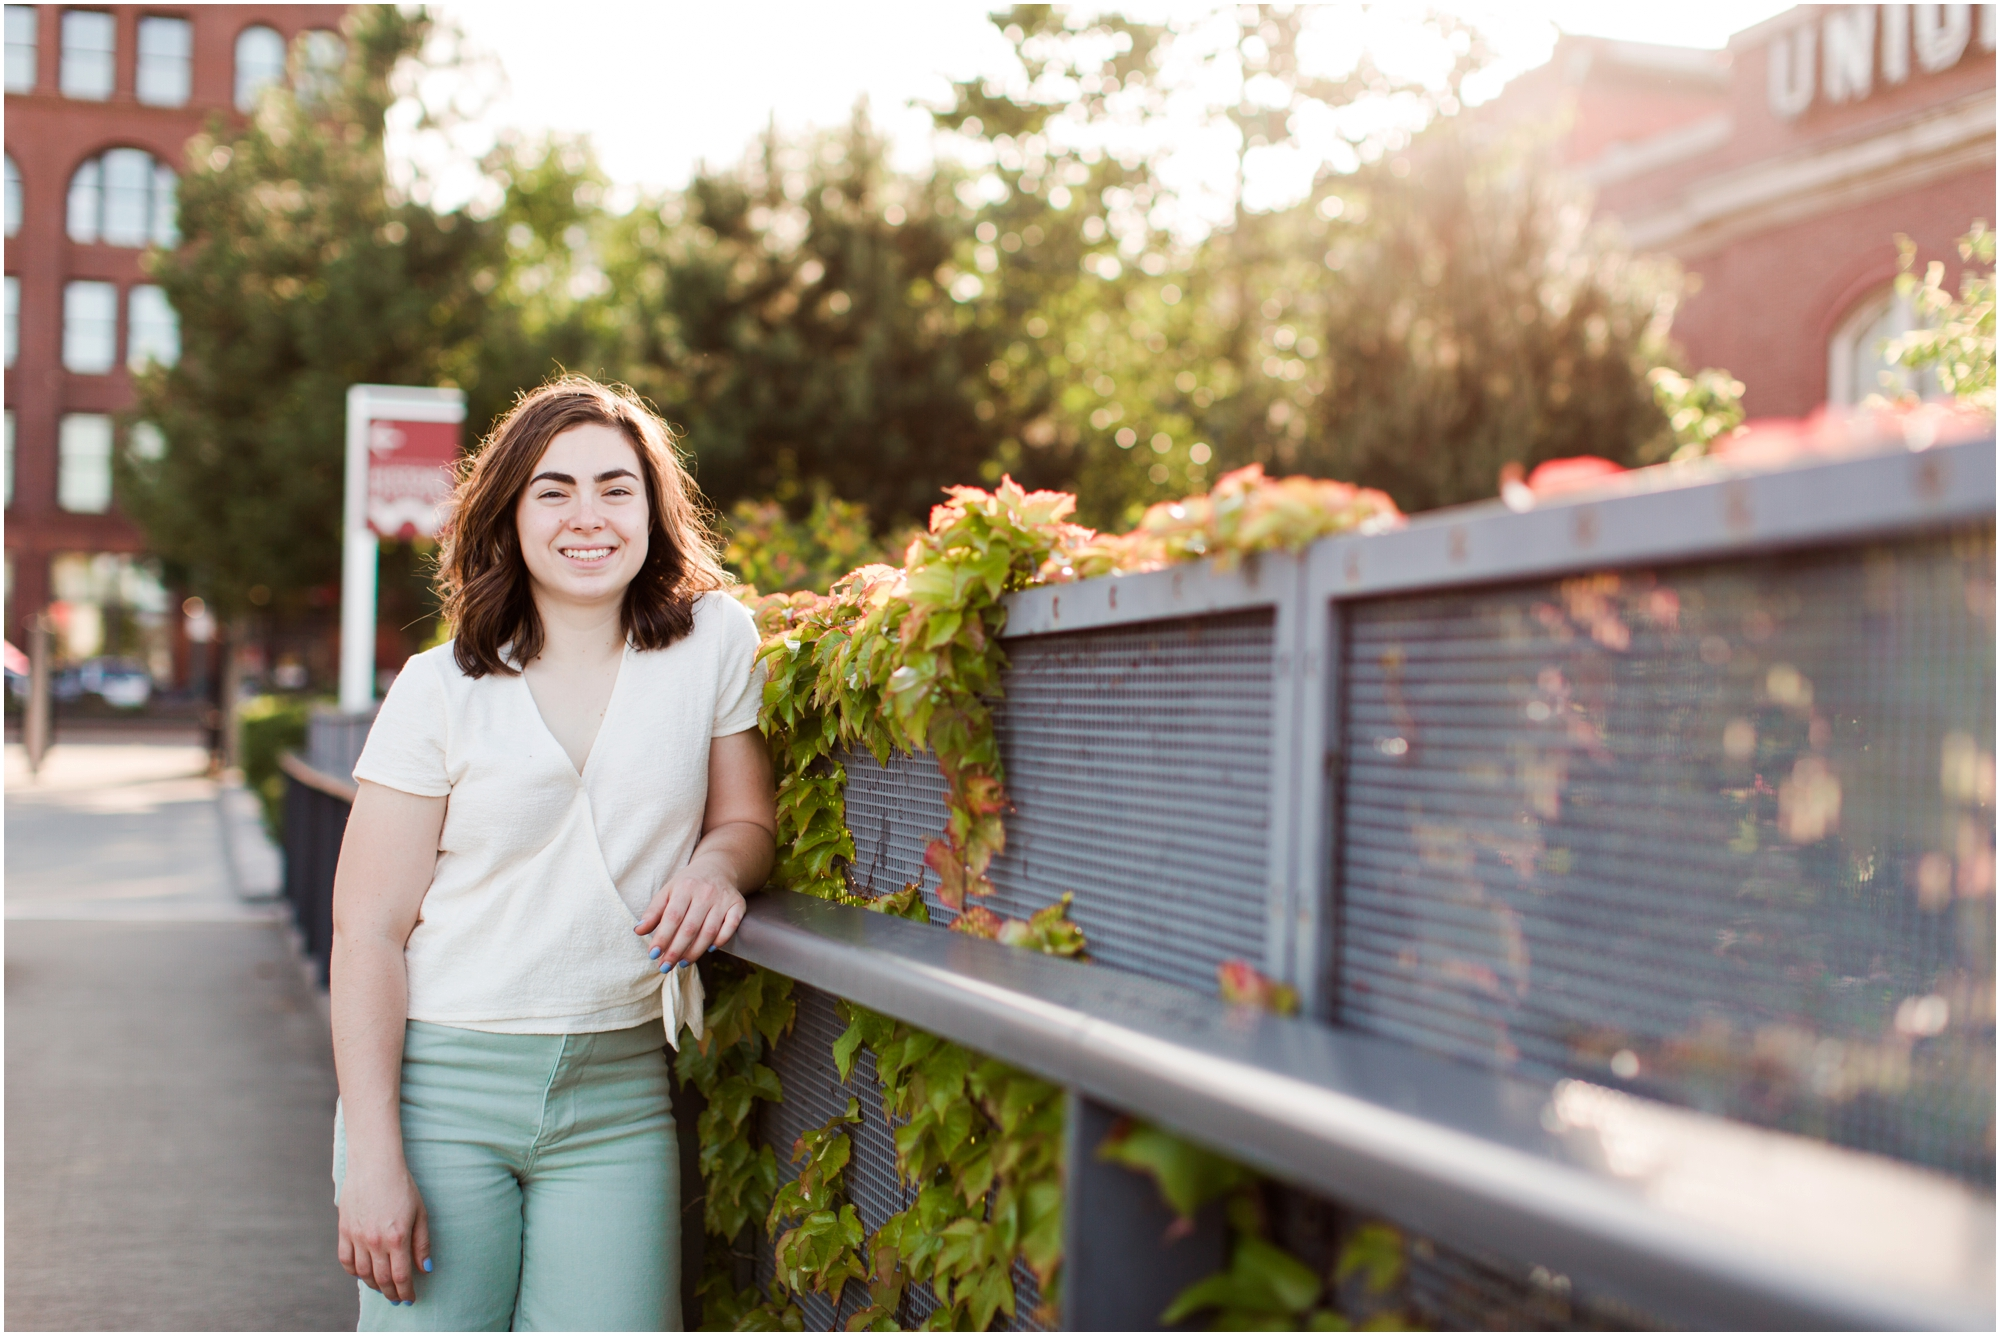 Senior portrait shoot at UW Tacoma campus and Bridge of Glass. Photos by Briana Calderon Photography based in the greater Seattle Area._1243.jpg